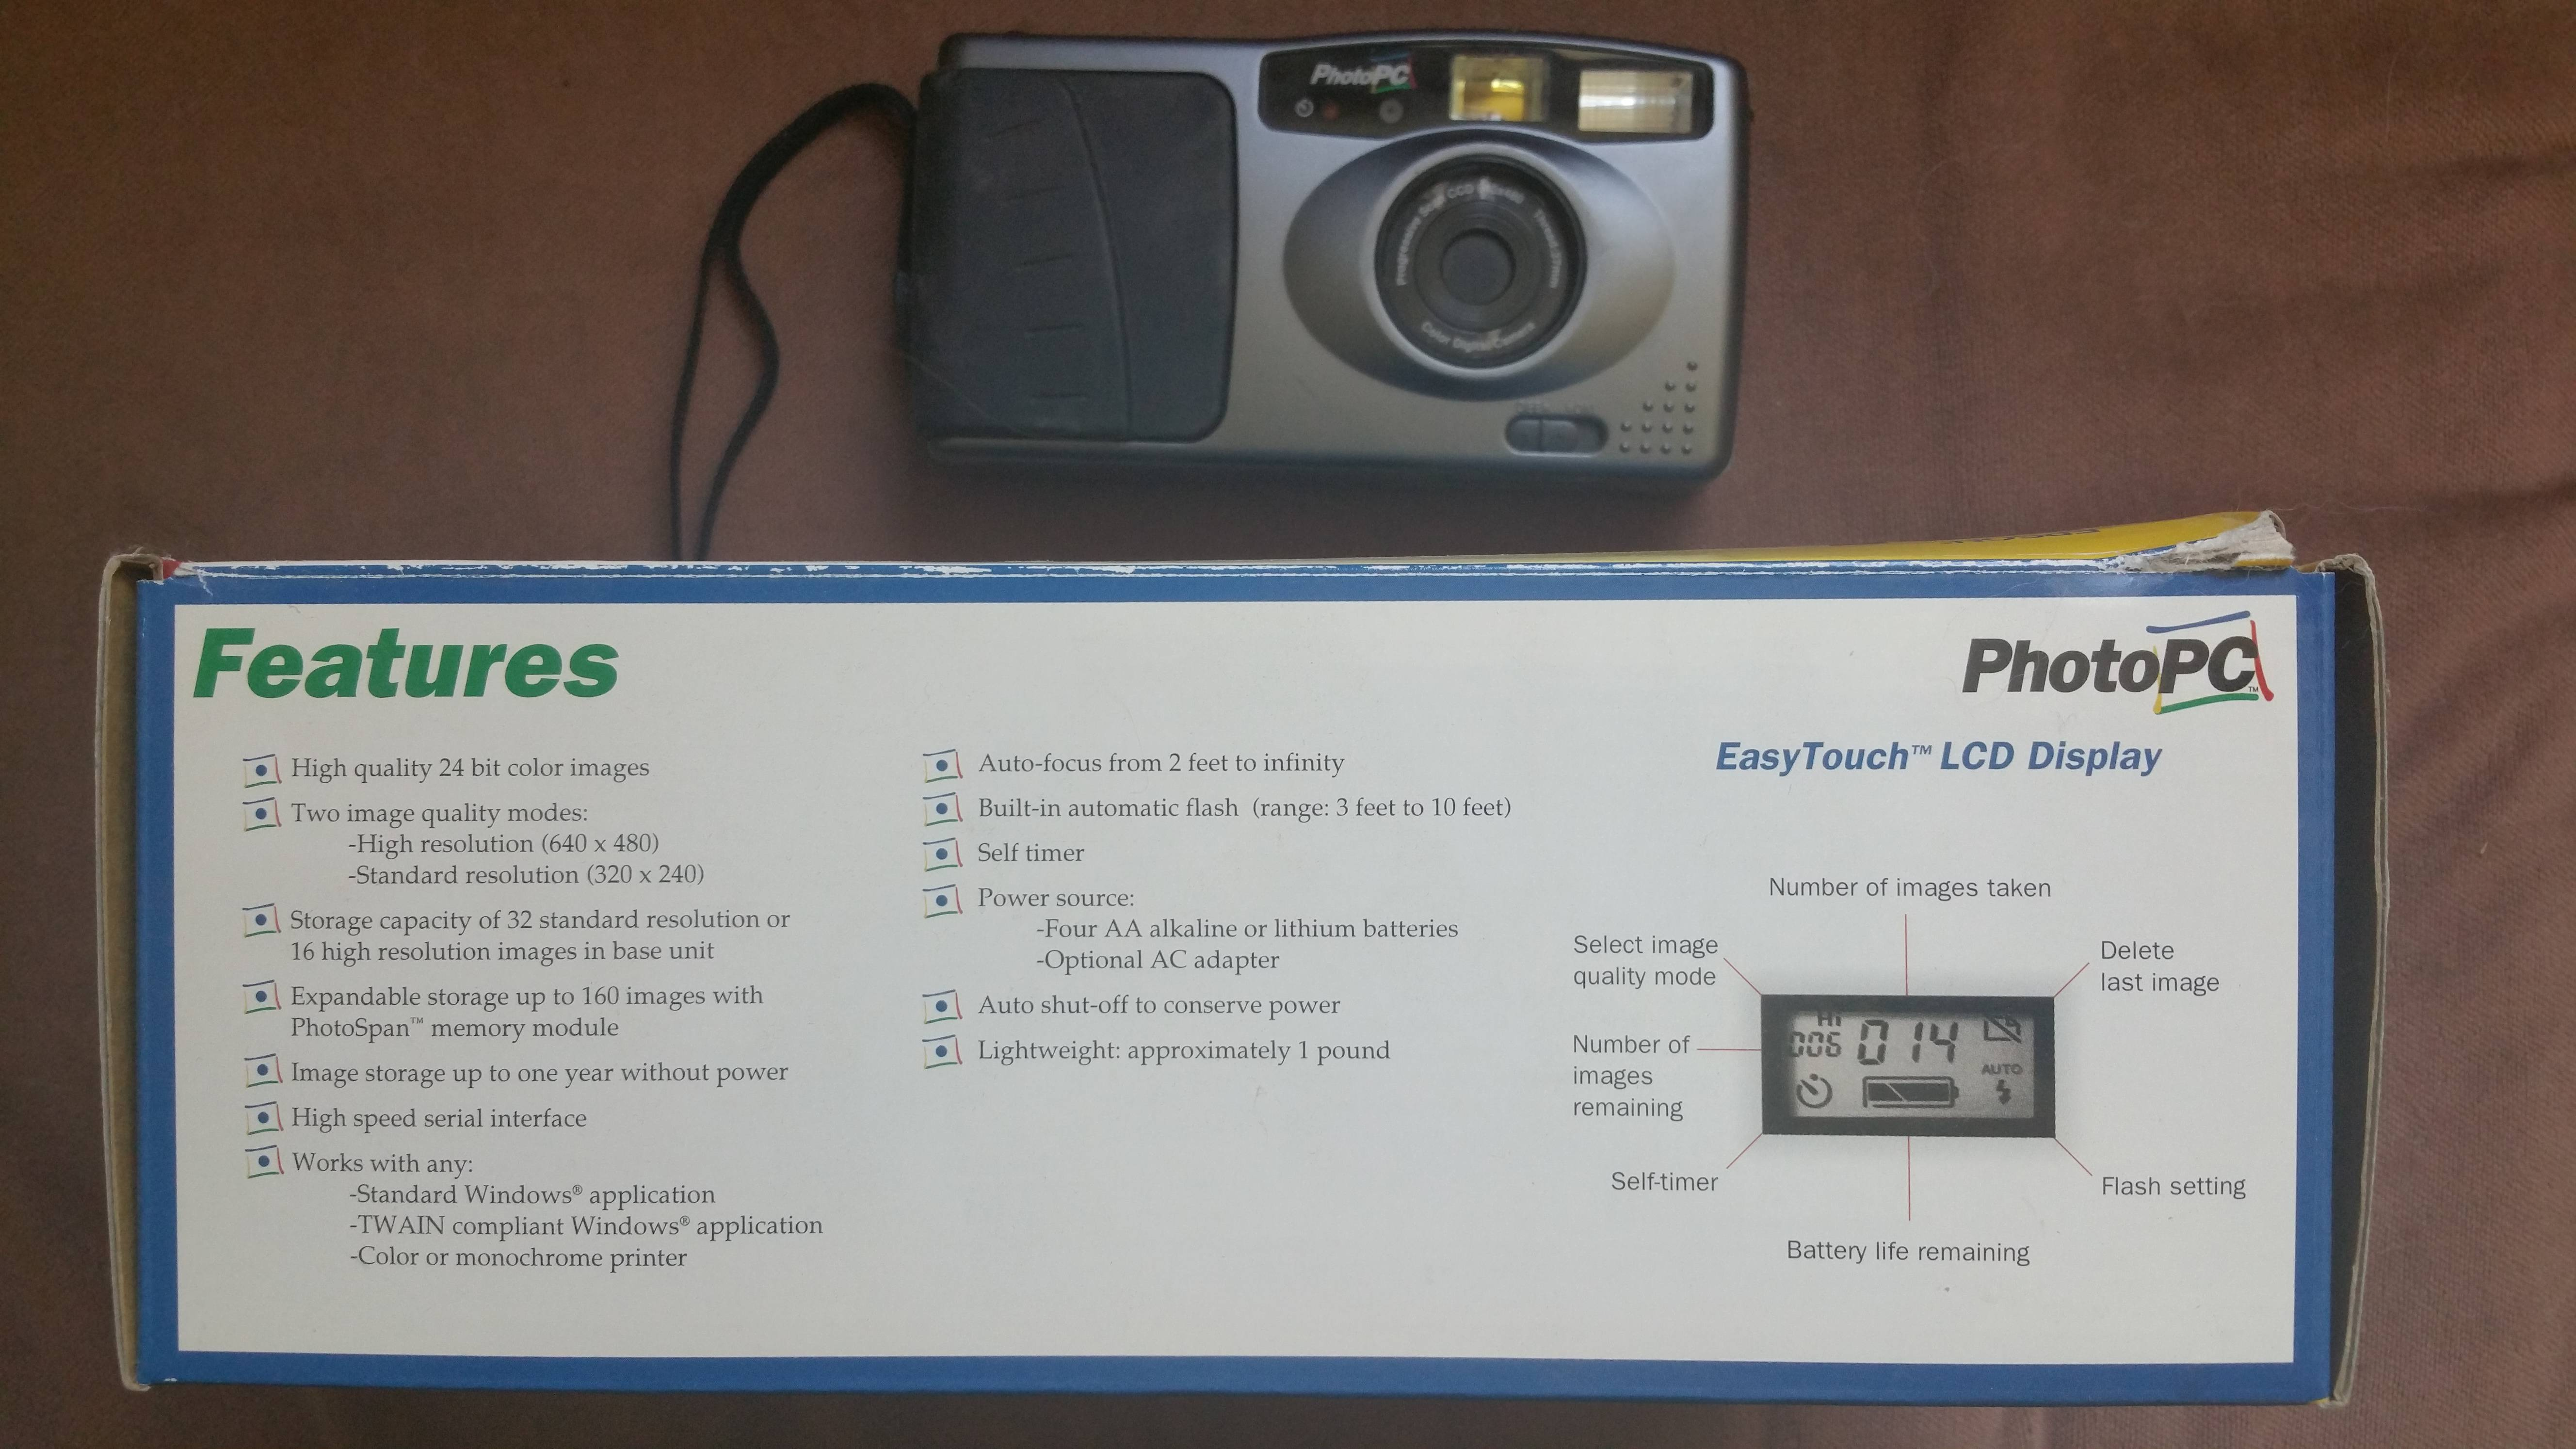 original Epson PhotoPC digital camera